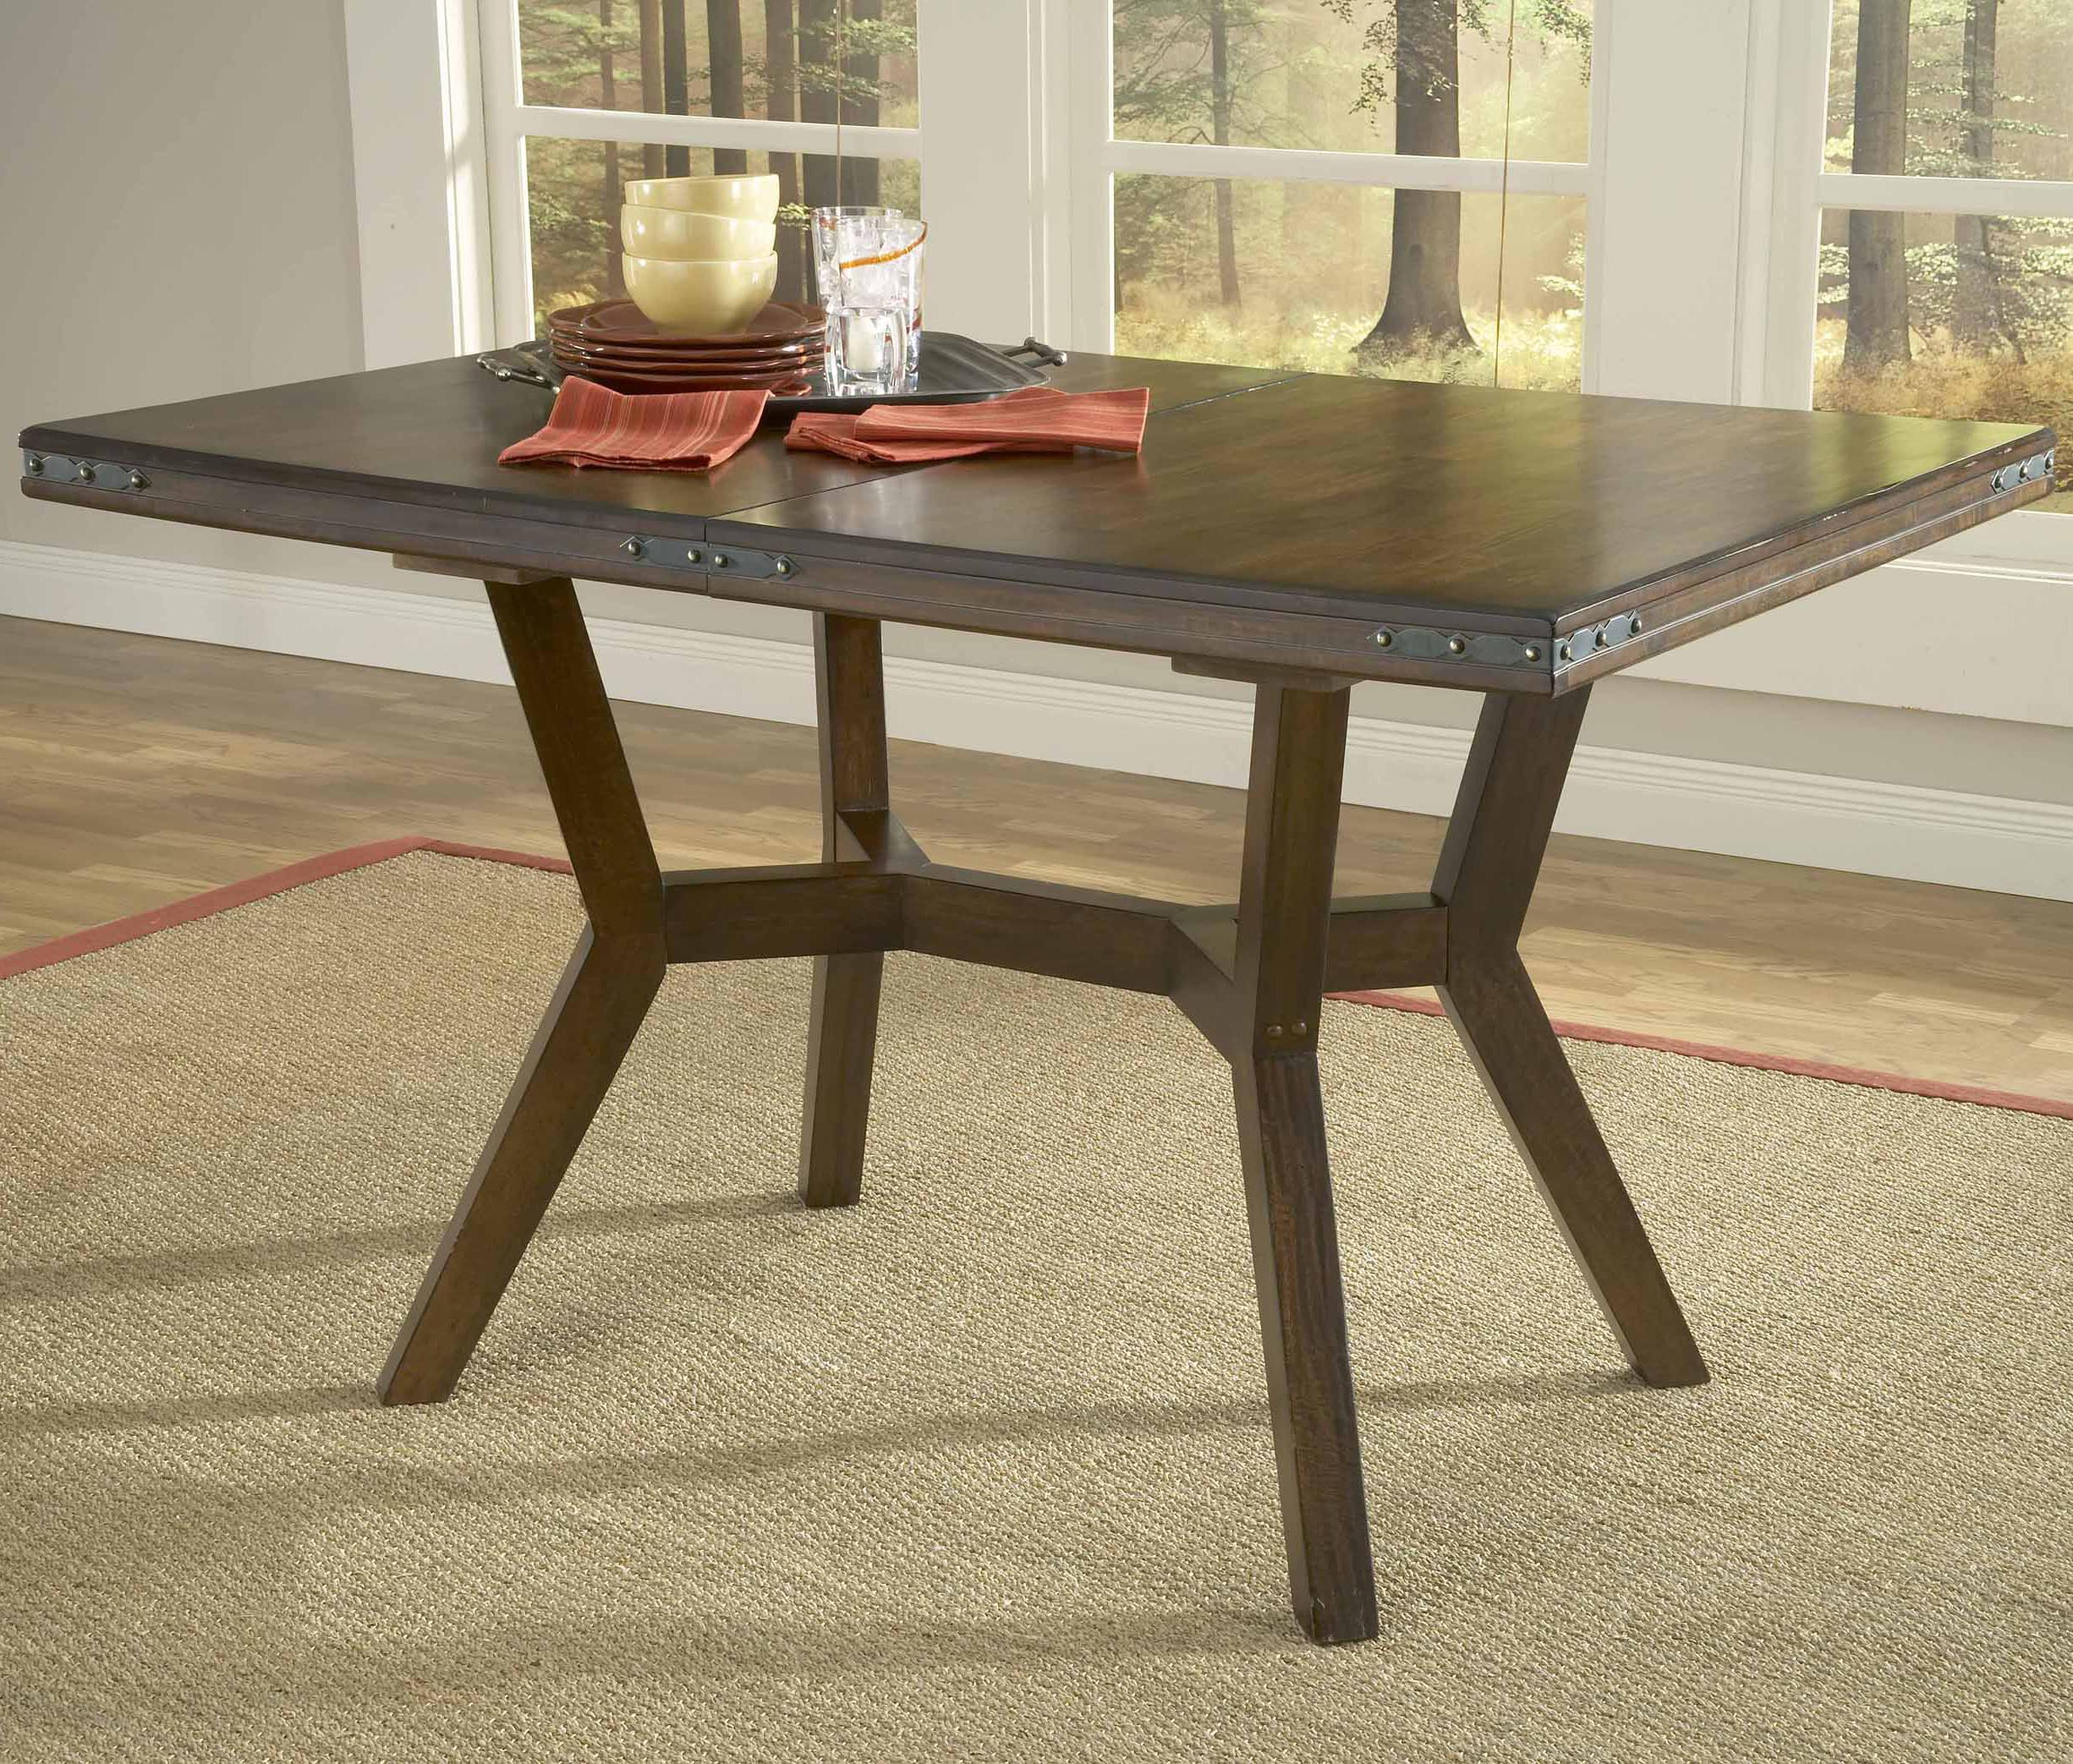 Hillsdale Arbor Hill Rectangular Leg Extension Dining Table - Item Number: 4232-814